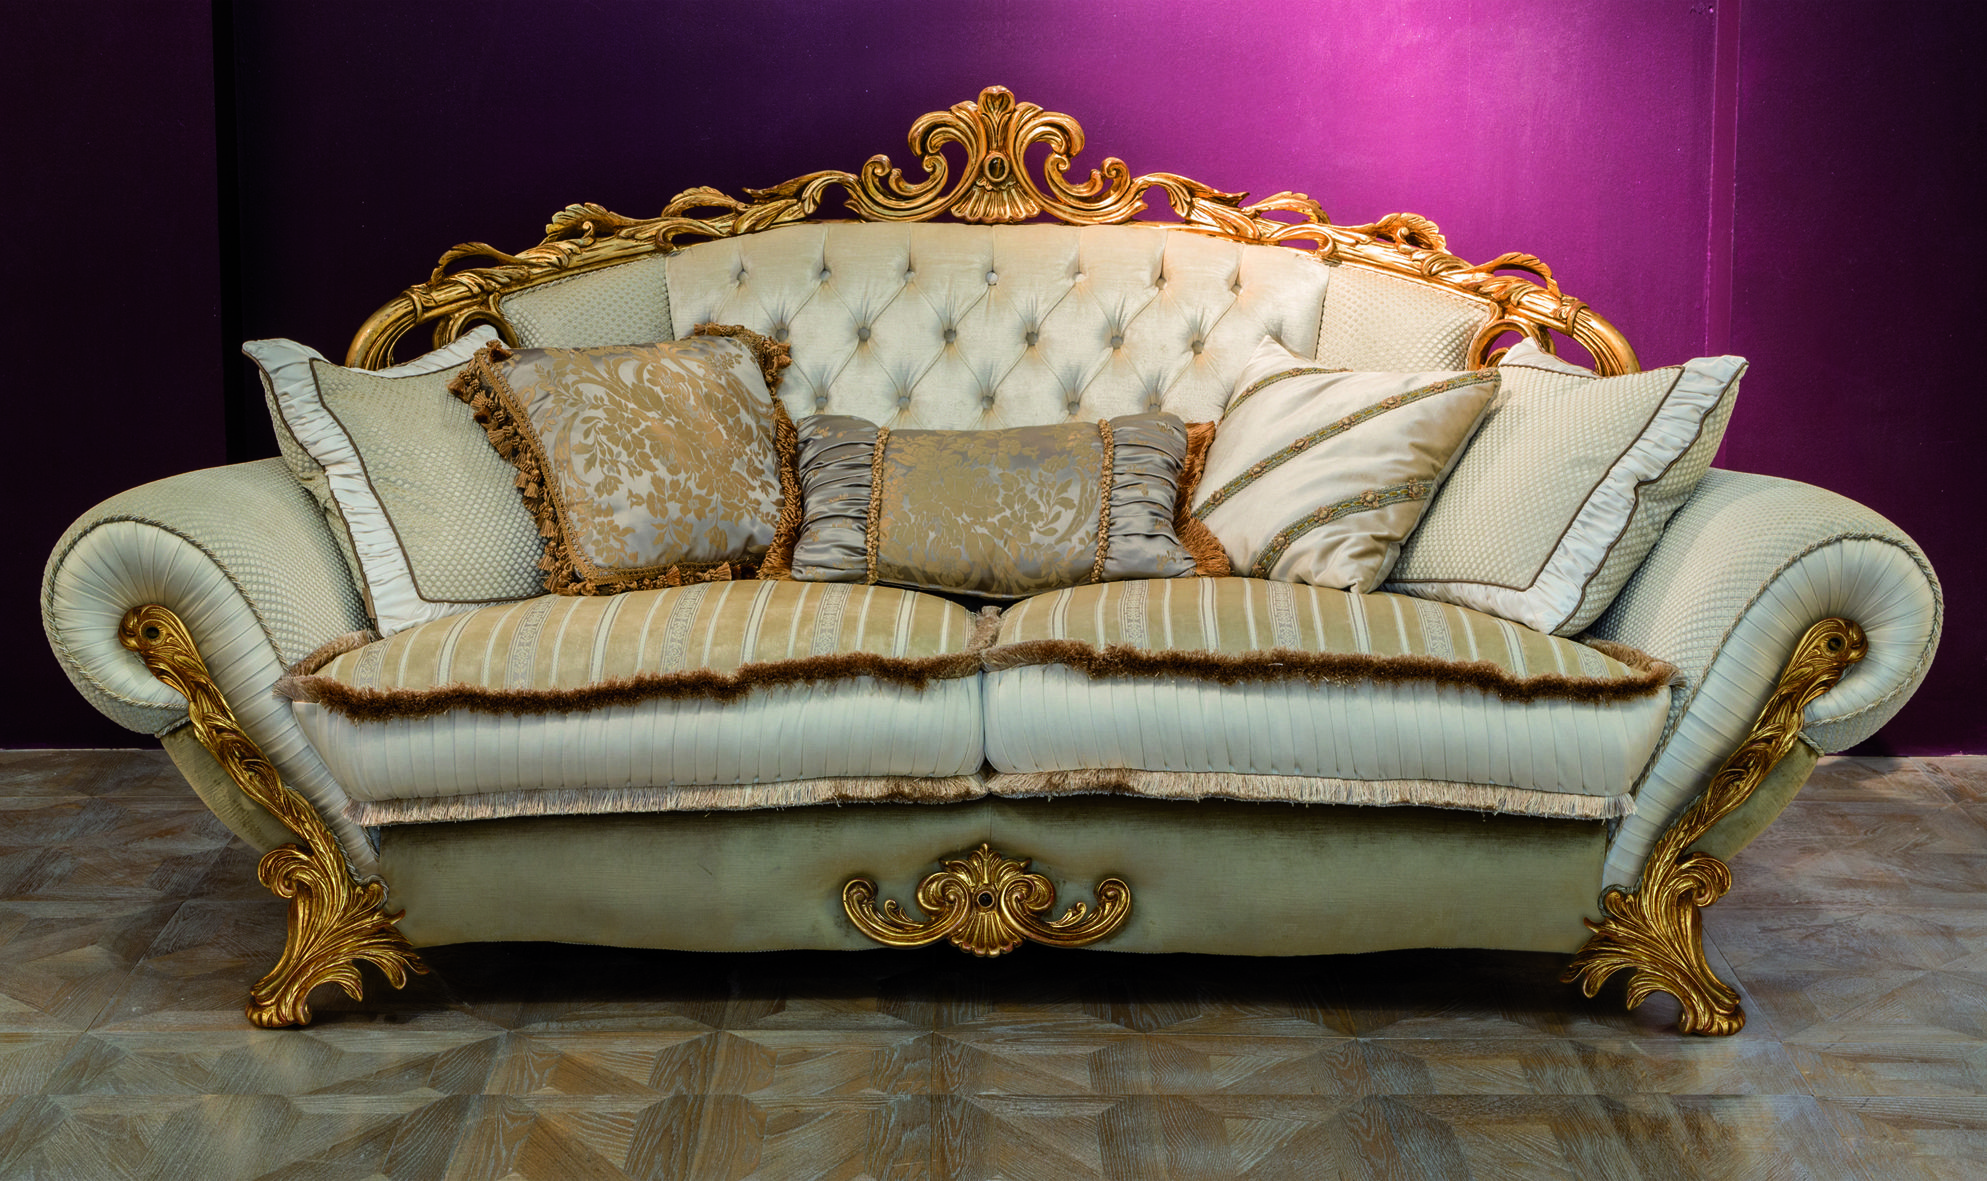 """OLEANDRO 3 seater sofa Covering as seen : Tufted central backrest and back tufted : Fabric art. Teatrocol. 122 cat. Extra. Armrest, backrest and back base : Fabric art. Rococò rombetto beige cat. Deluxe. Seat : Fabric art. Rococò riga col. Beige cat. Deluxe. Band of seat : Fabric art. Raso Rio col. 6537 cat. Super. Base and back : Fabric art. Teatro col. 103 cat. Extra. Wood Finishing : cod. 395 - Gold antiqued leaf with red bole with cabuchon in """"tiger eye"""". www.mantellassi.com"""